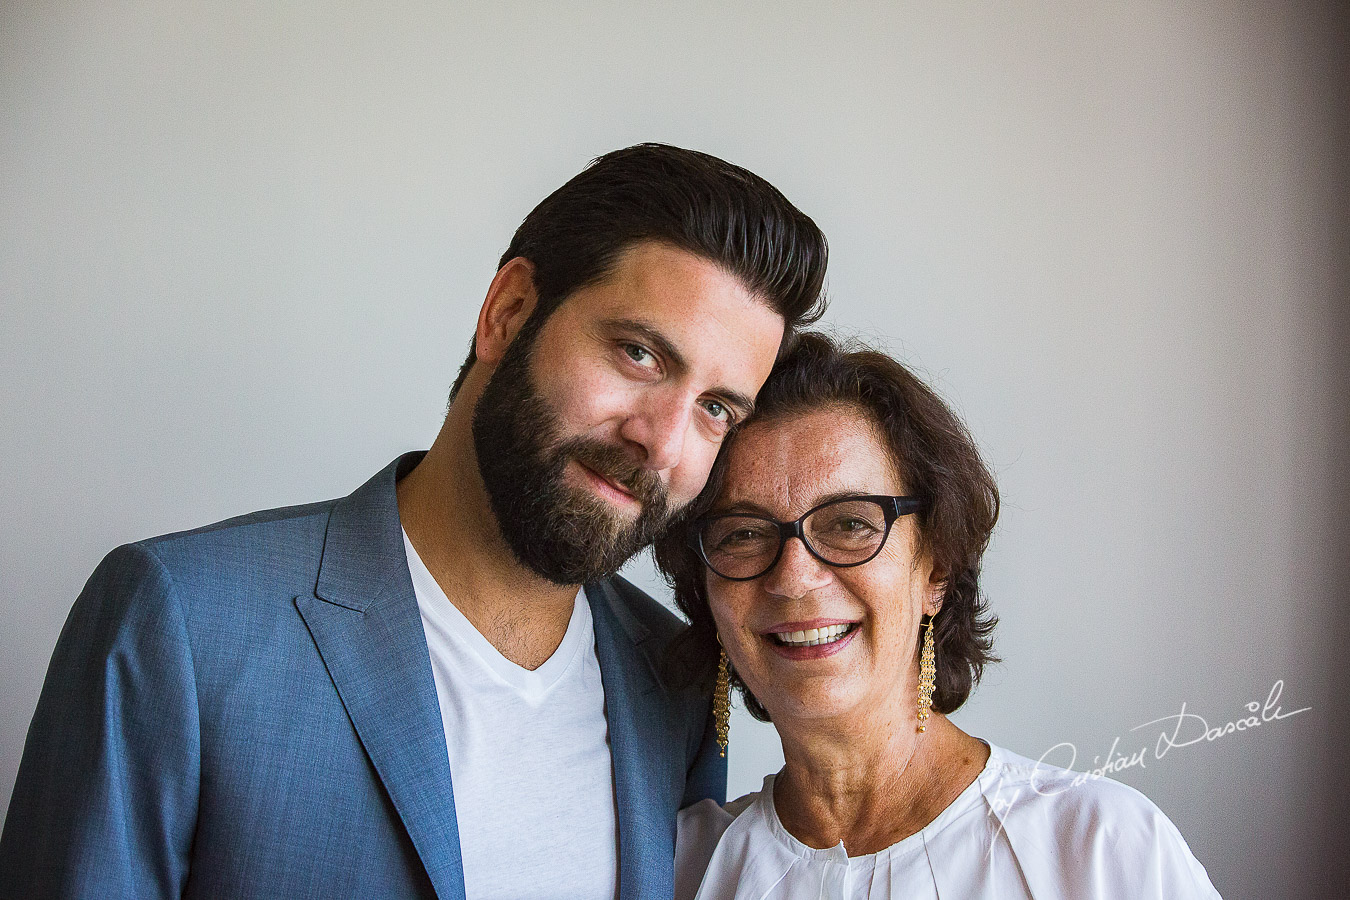 Tarek, the groom and his mother, photographed at Londa Hotel in Limassol, Cyprus.